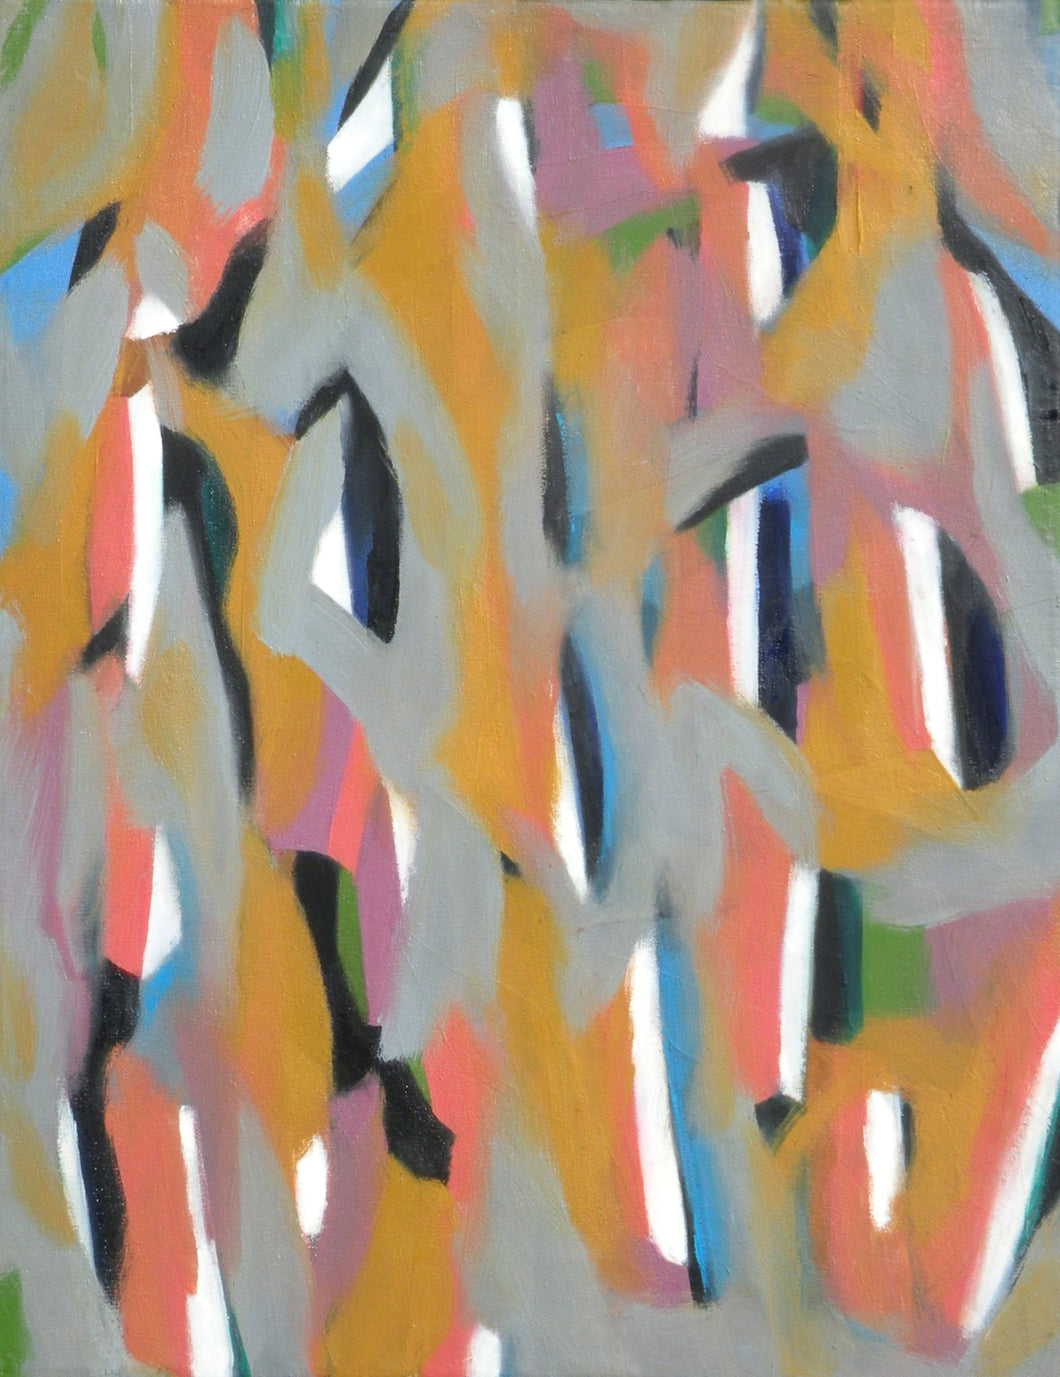 Cheerful abstract painting of loosely painted vertical stripes in ocher, pink and blue on a gray background by Canadian painter Gregg Simpson.